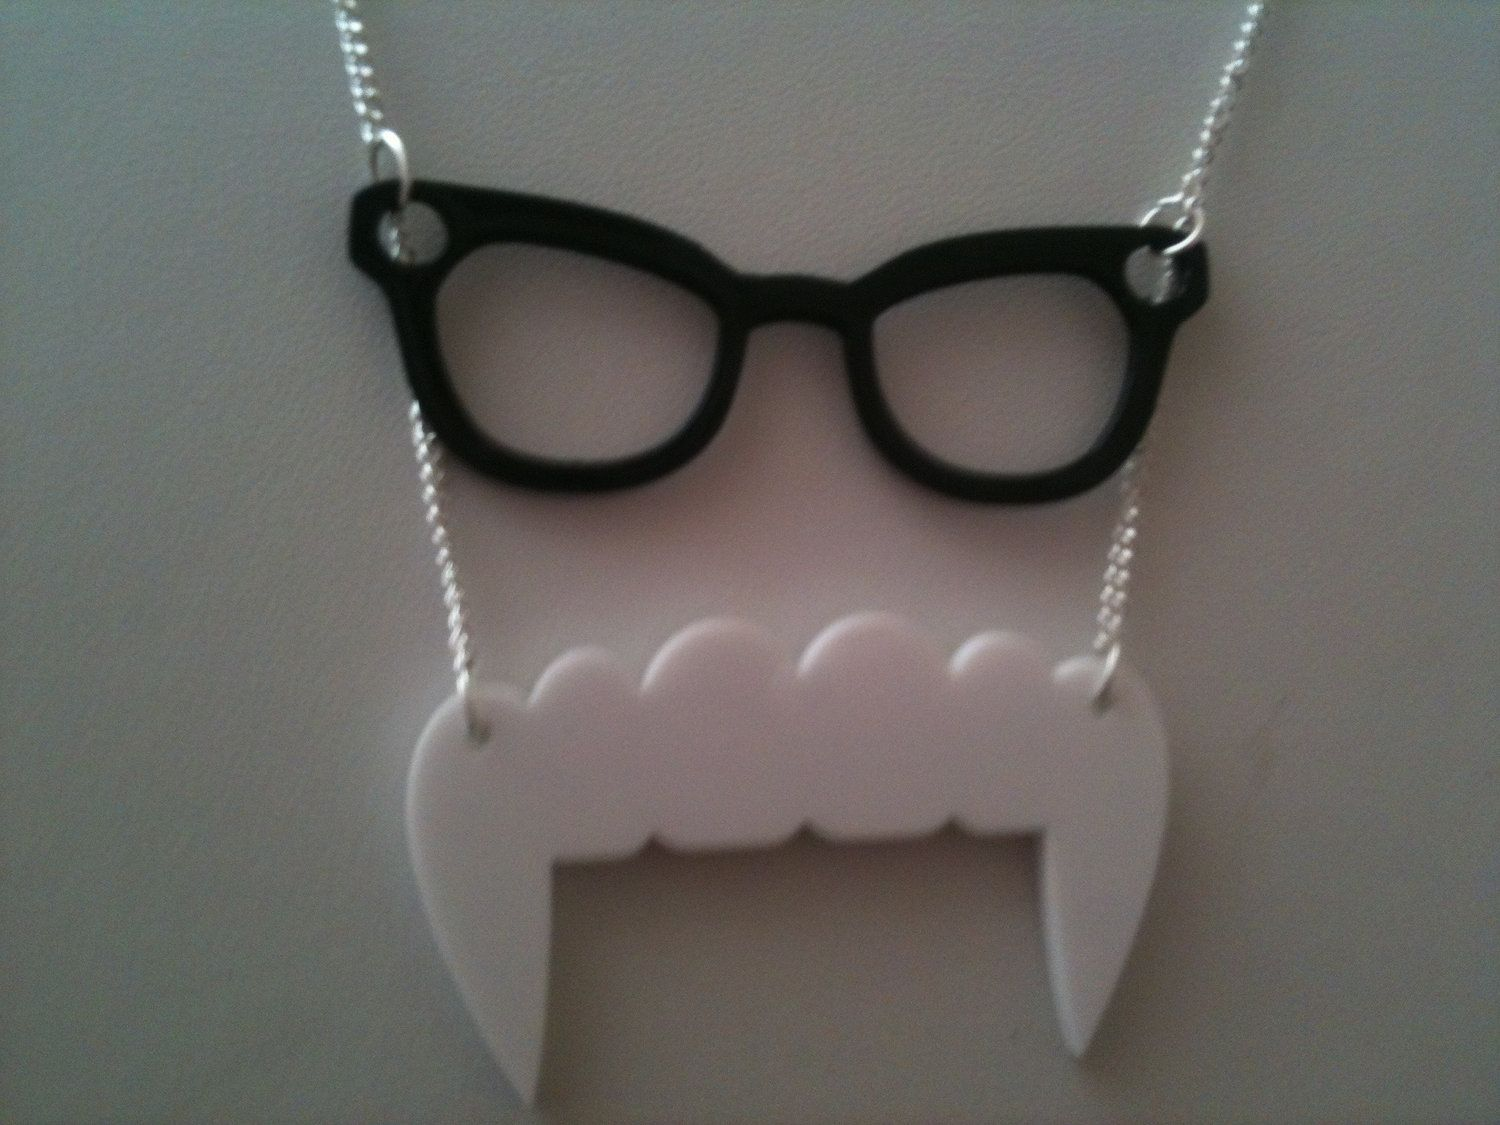 Vampire / nerd necklace on Etsy... vampire teeth with thick rimmed glasses... this is soo much fun